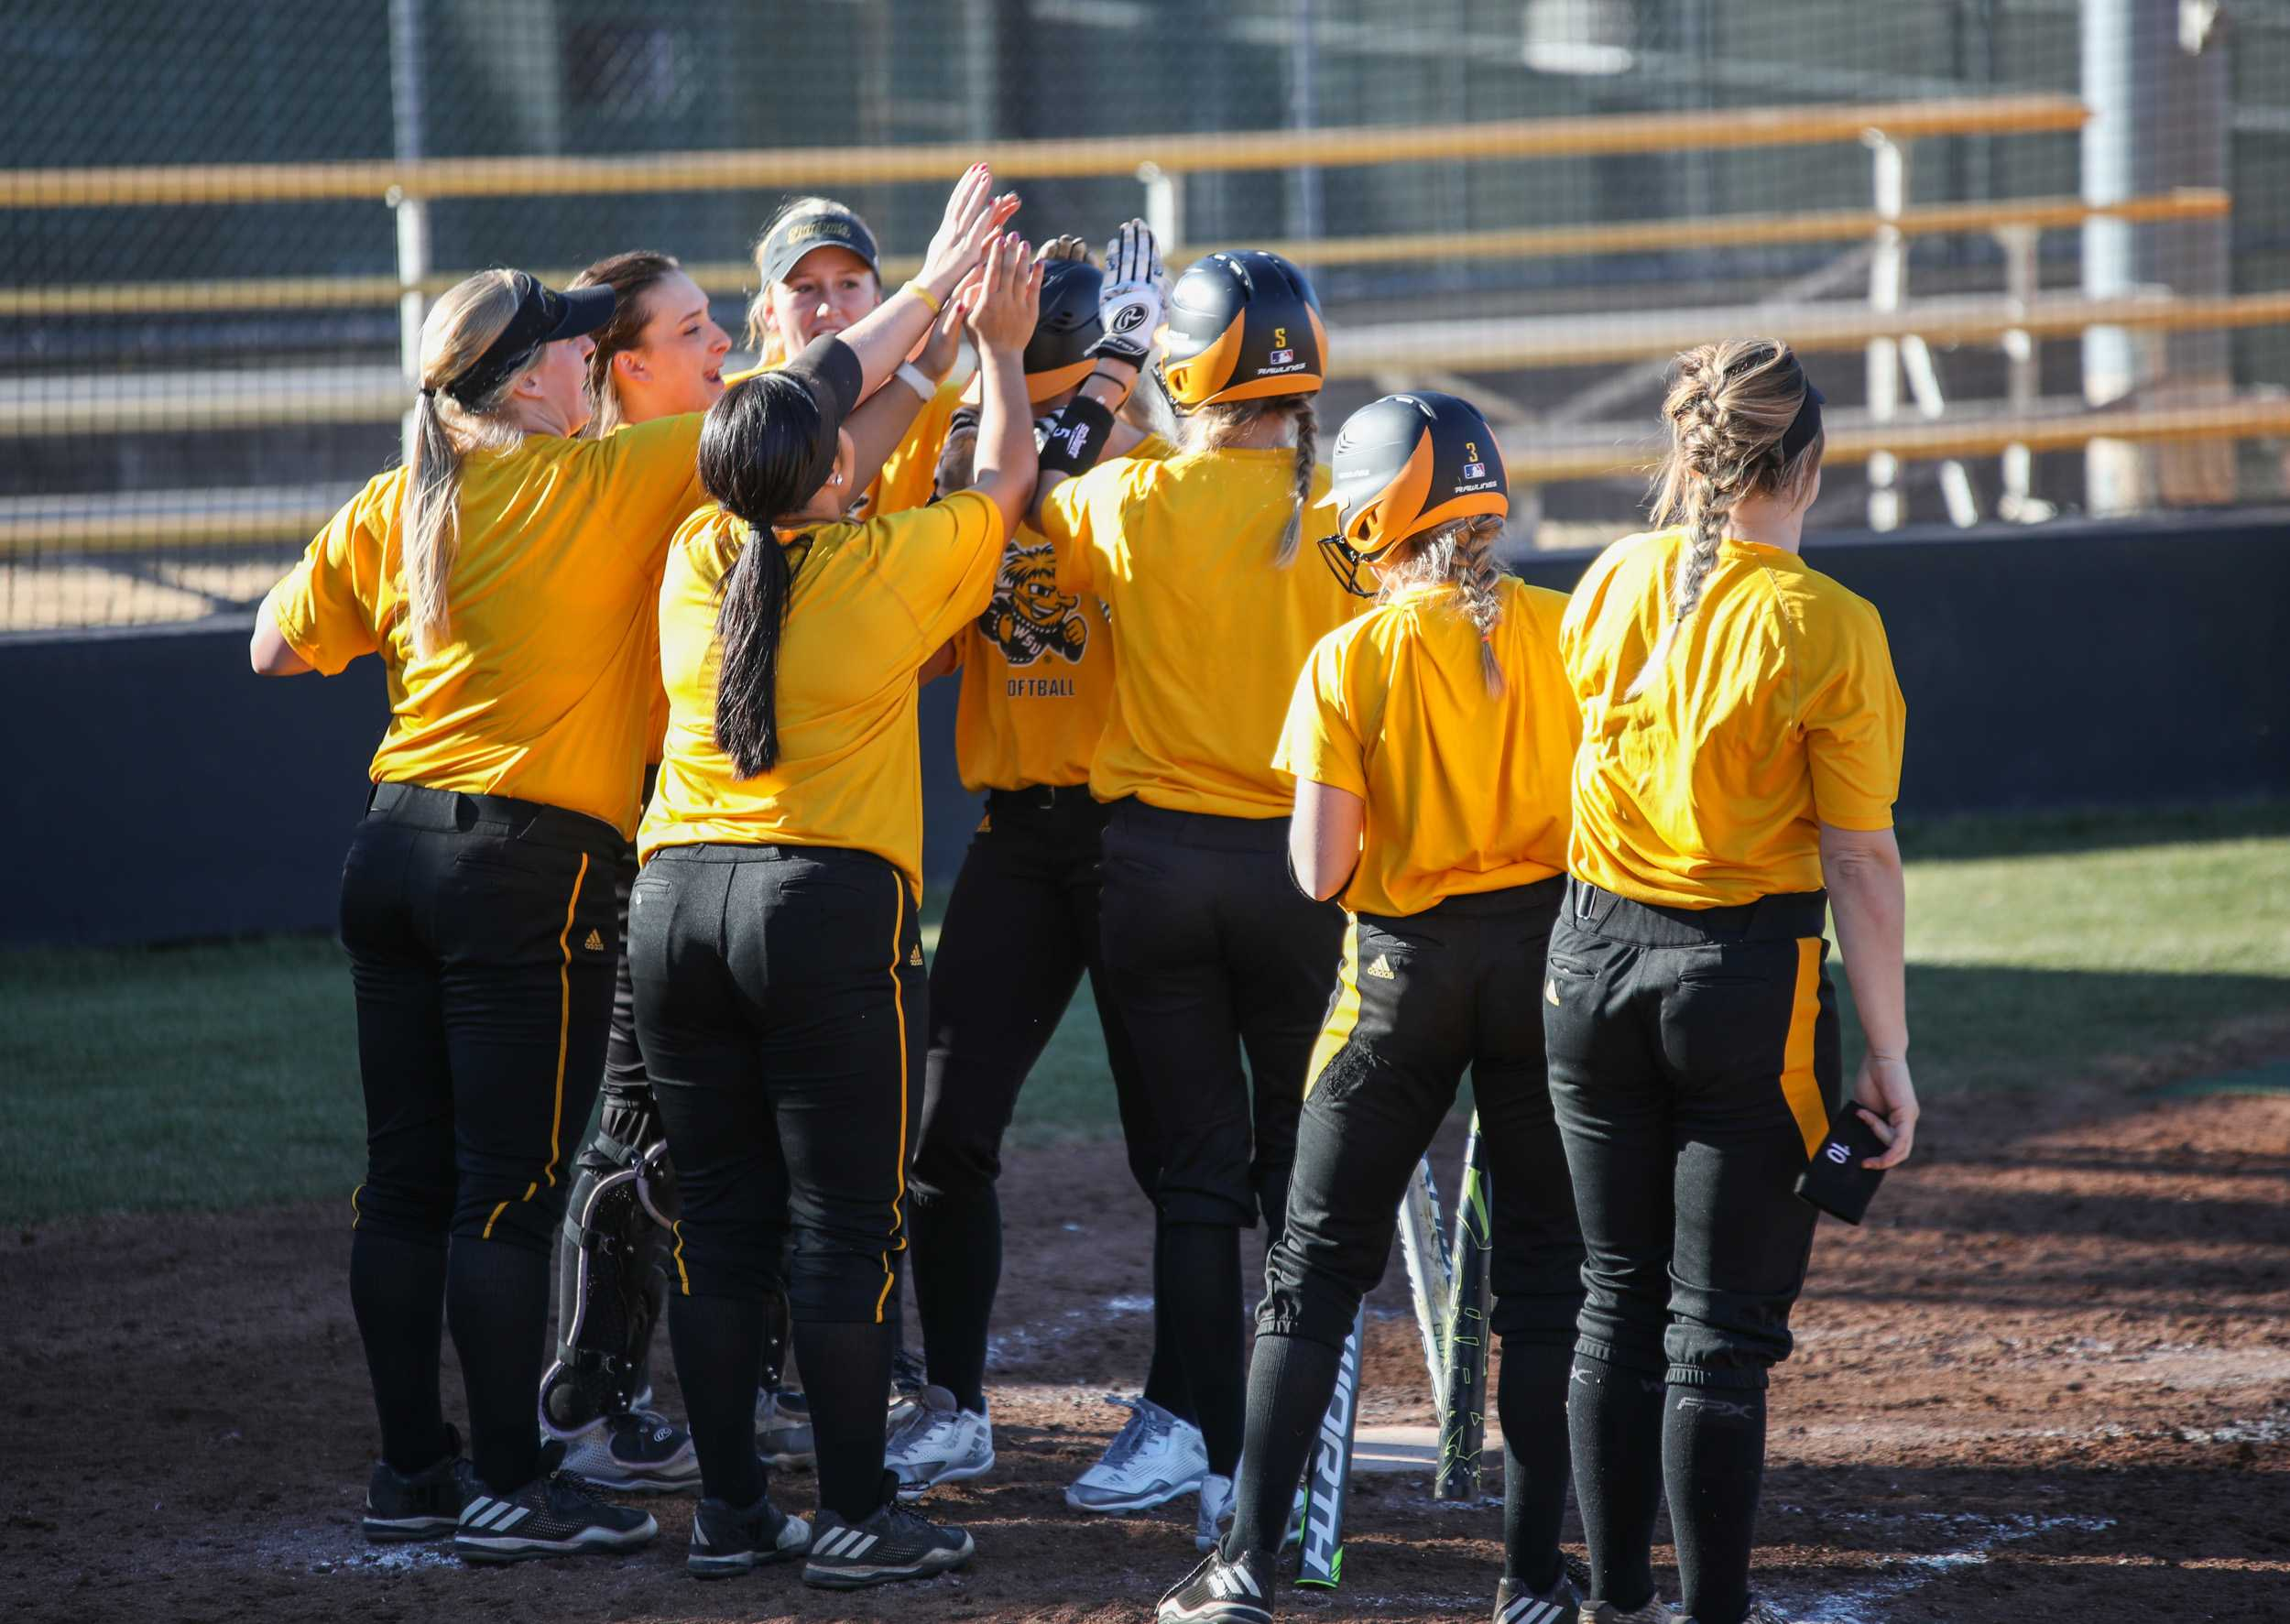 Ryleigh Buck is greeted by her teammates after hitting a home run in a scrimmage on Feb. 7, 2017.